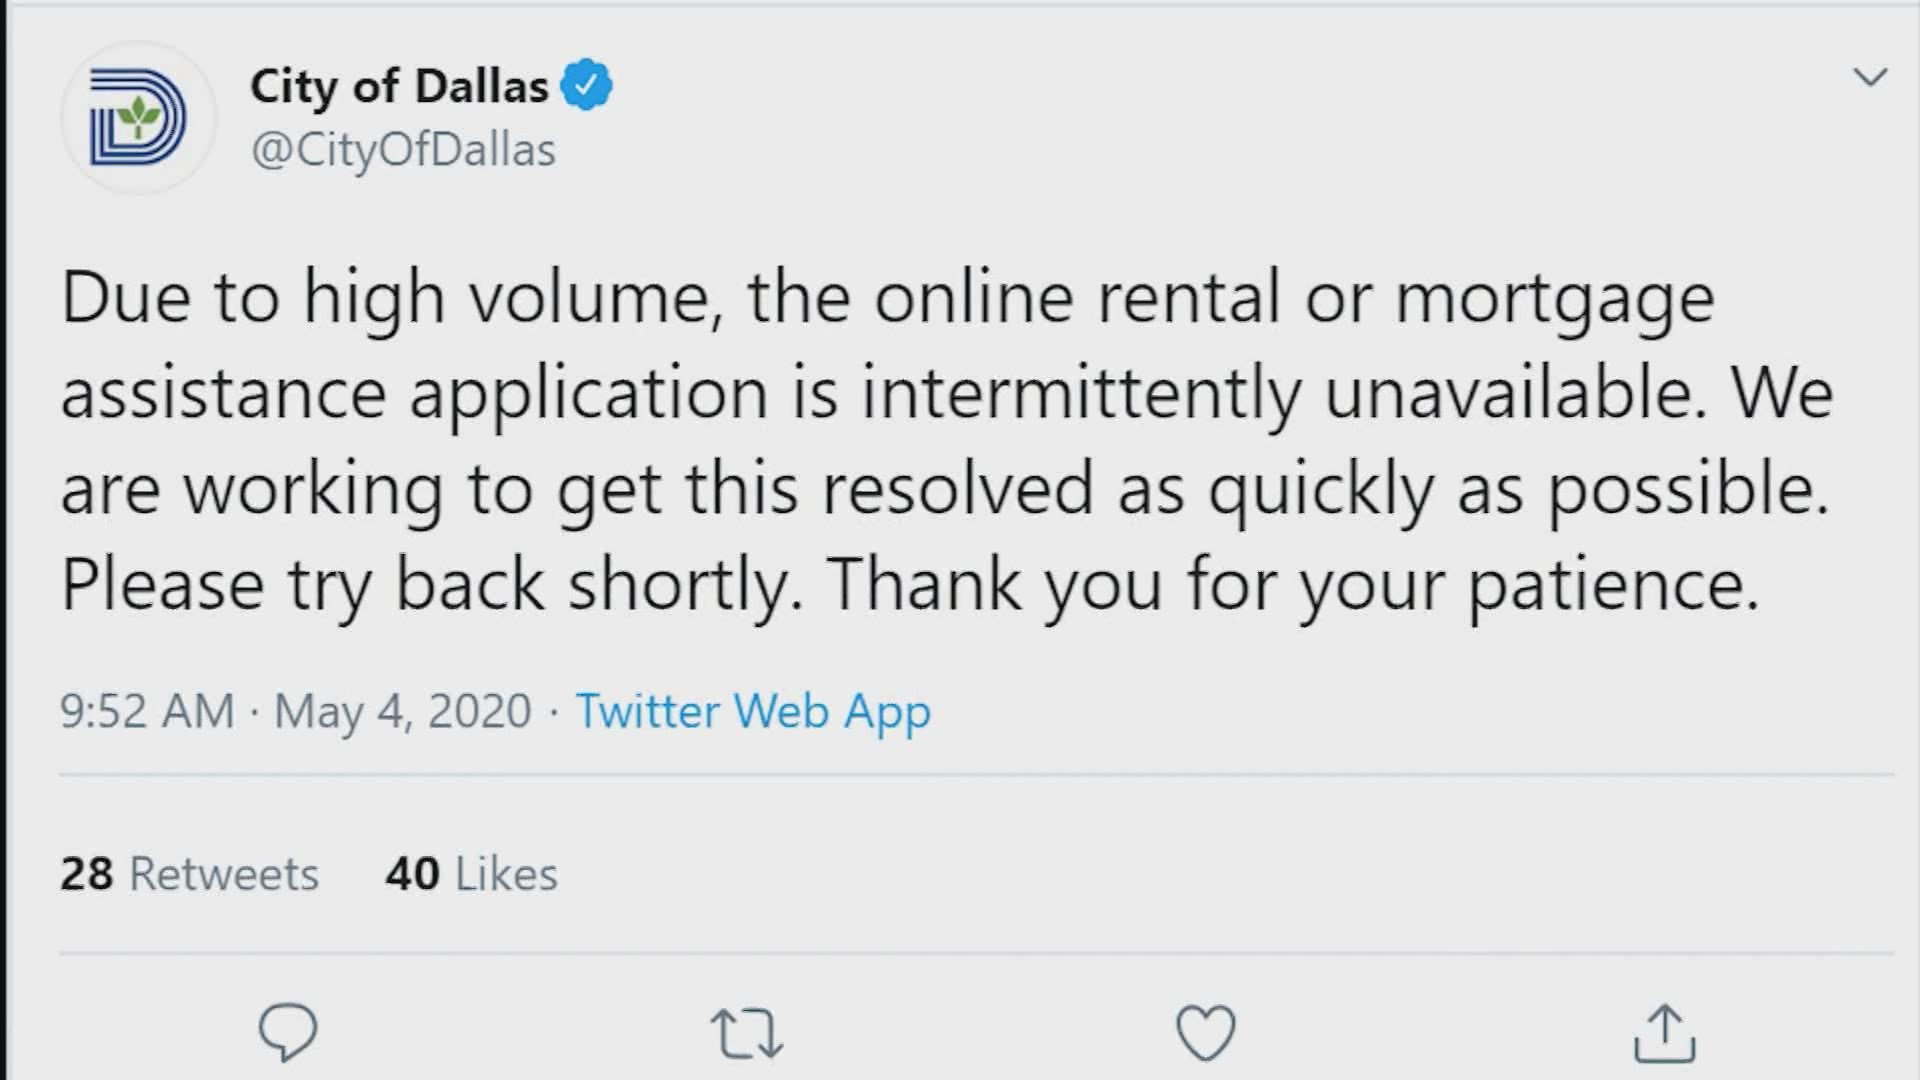 Dallas Small Business Rent And Mortgage Relief Programs Overwhelmed By Initial Applications City Website Crashes Wfaa Com